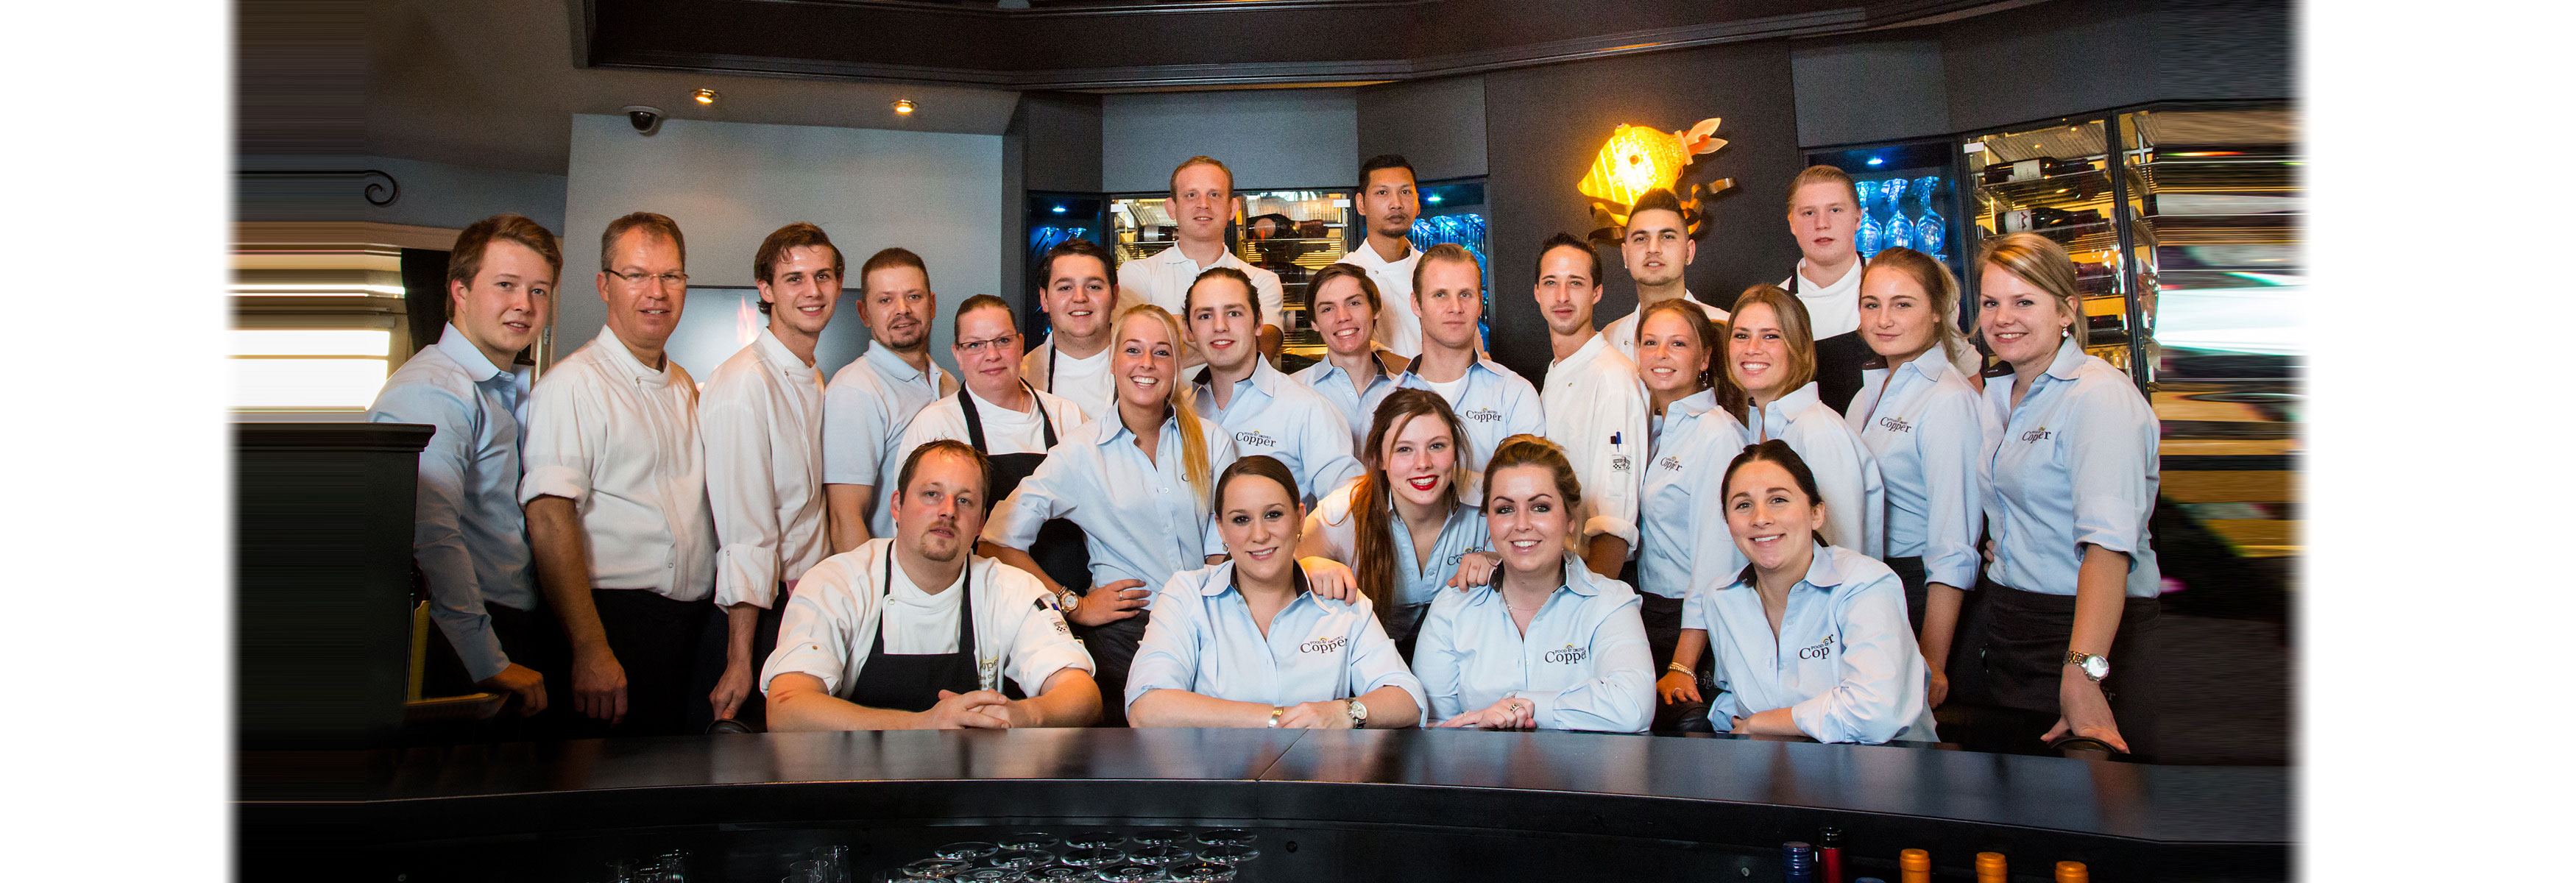 team restaurant Copper te Noordwijk